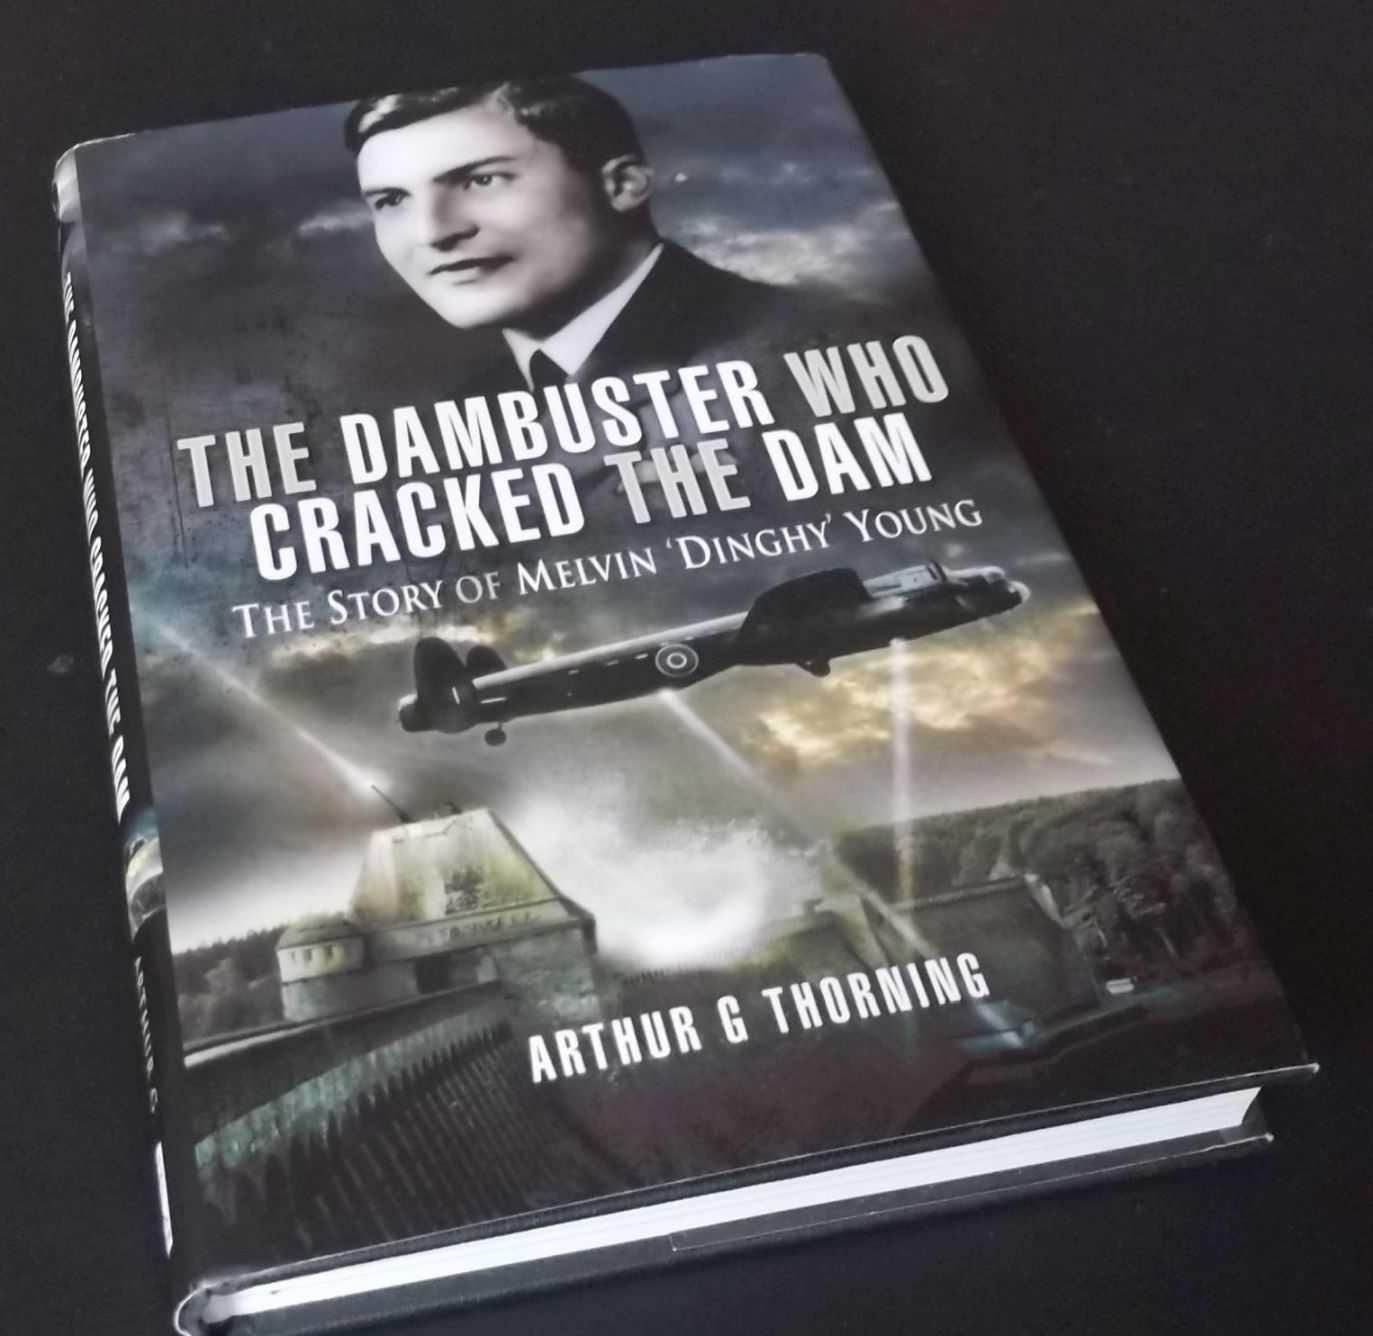 ARTHUR G. THORNING - The Dambuster Who Cracked the Dam: The Story of Melvin 'Dinghy' Young